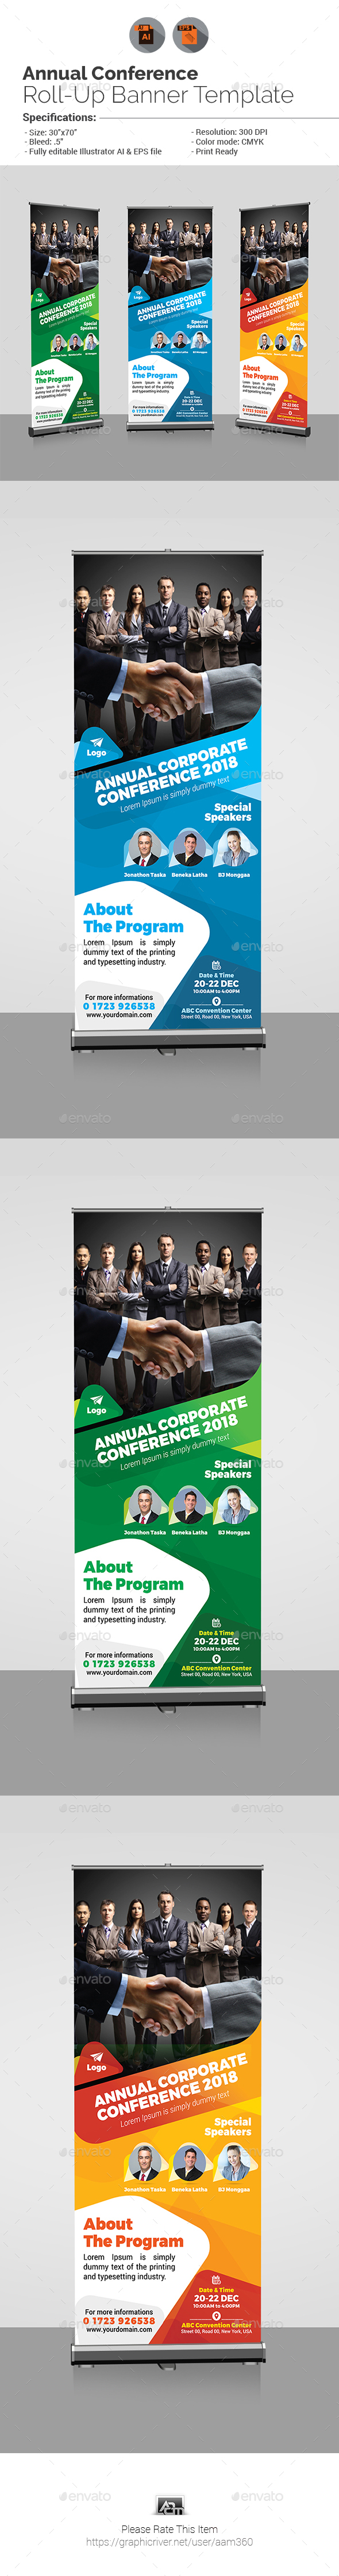 Annual Corporate Conference Roll-up Banner - Signage Print Templates